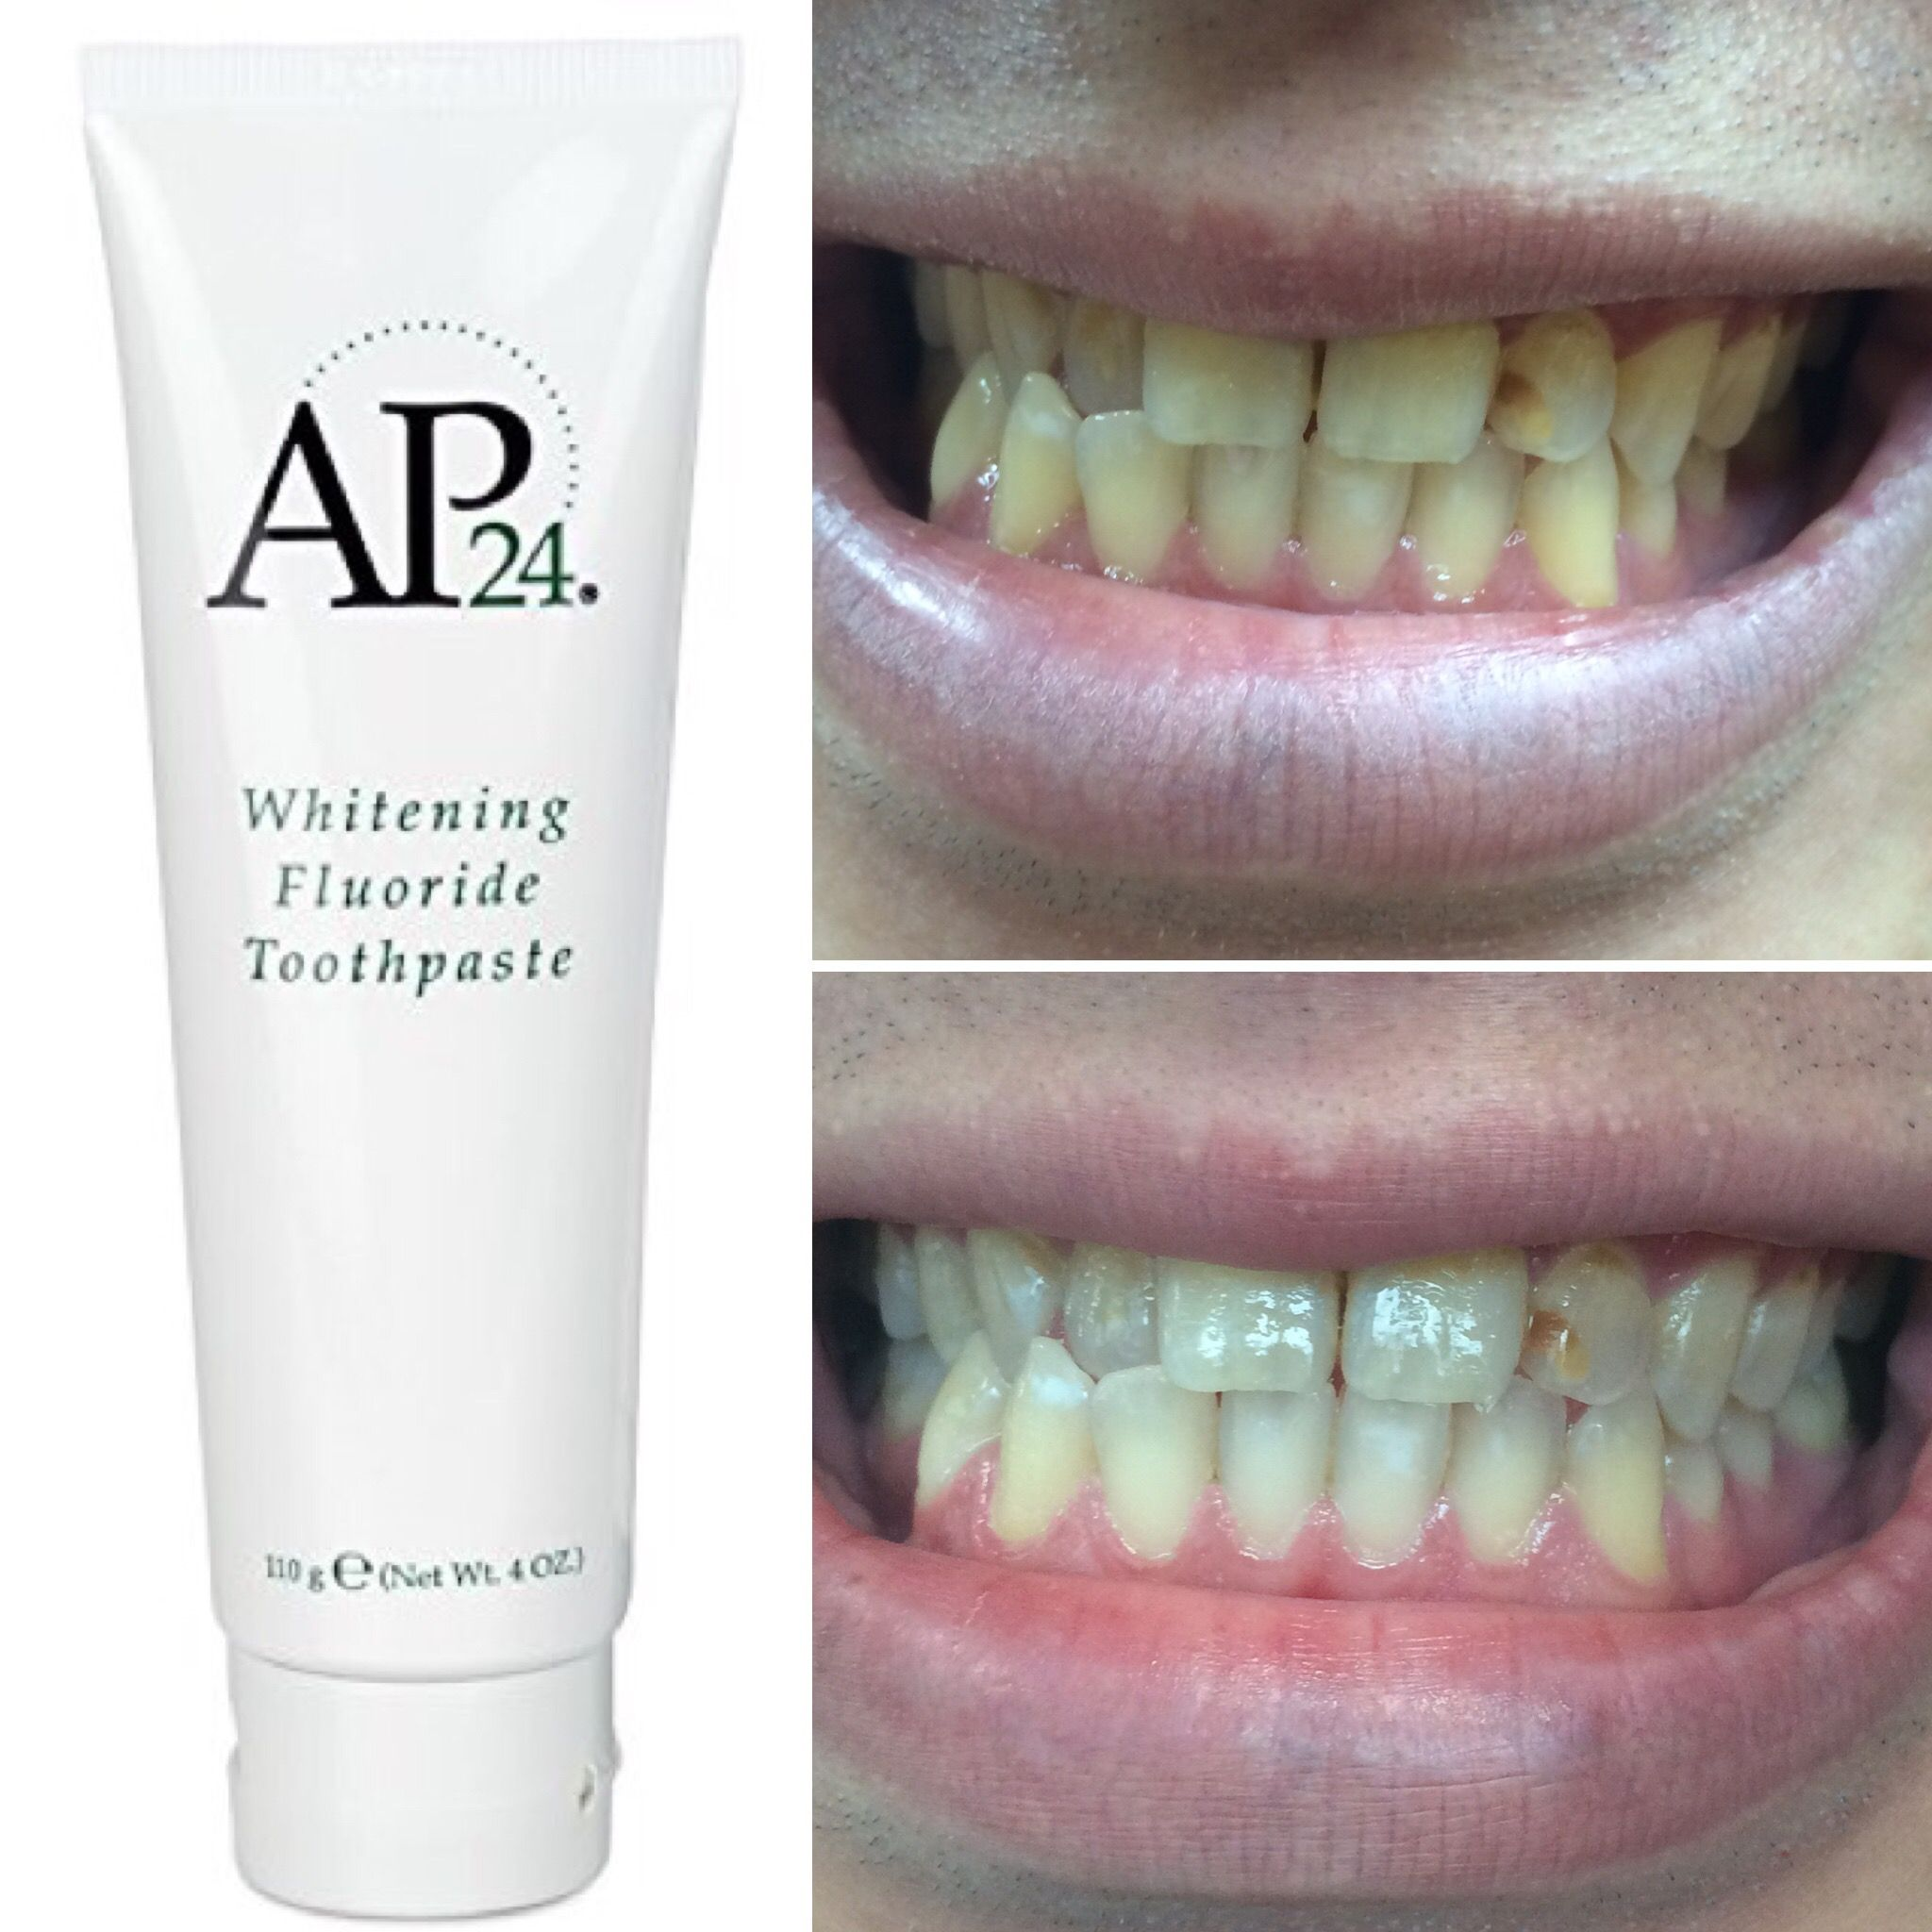 after 1 week use of ap24 whitening toothpaste say hello to your